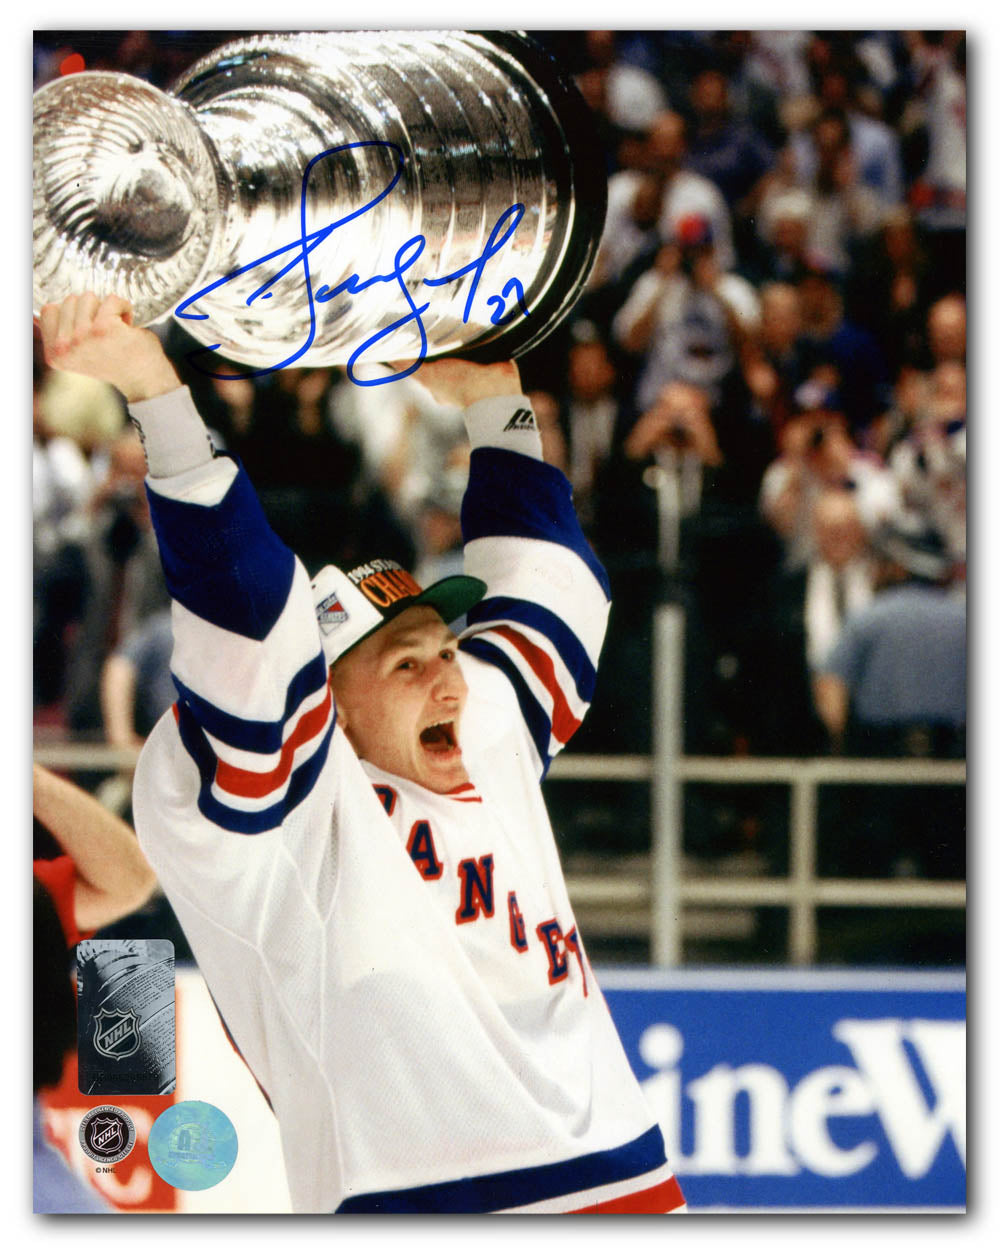 b58b3d69443 Join A.J. Sports World mailing list discounts and autograph event  newsletters